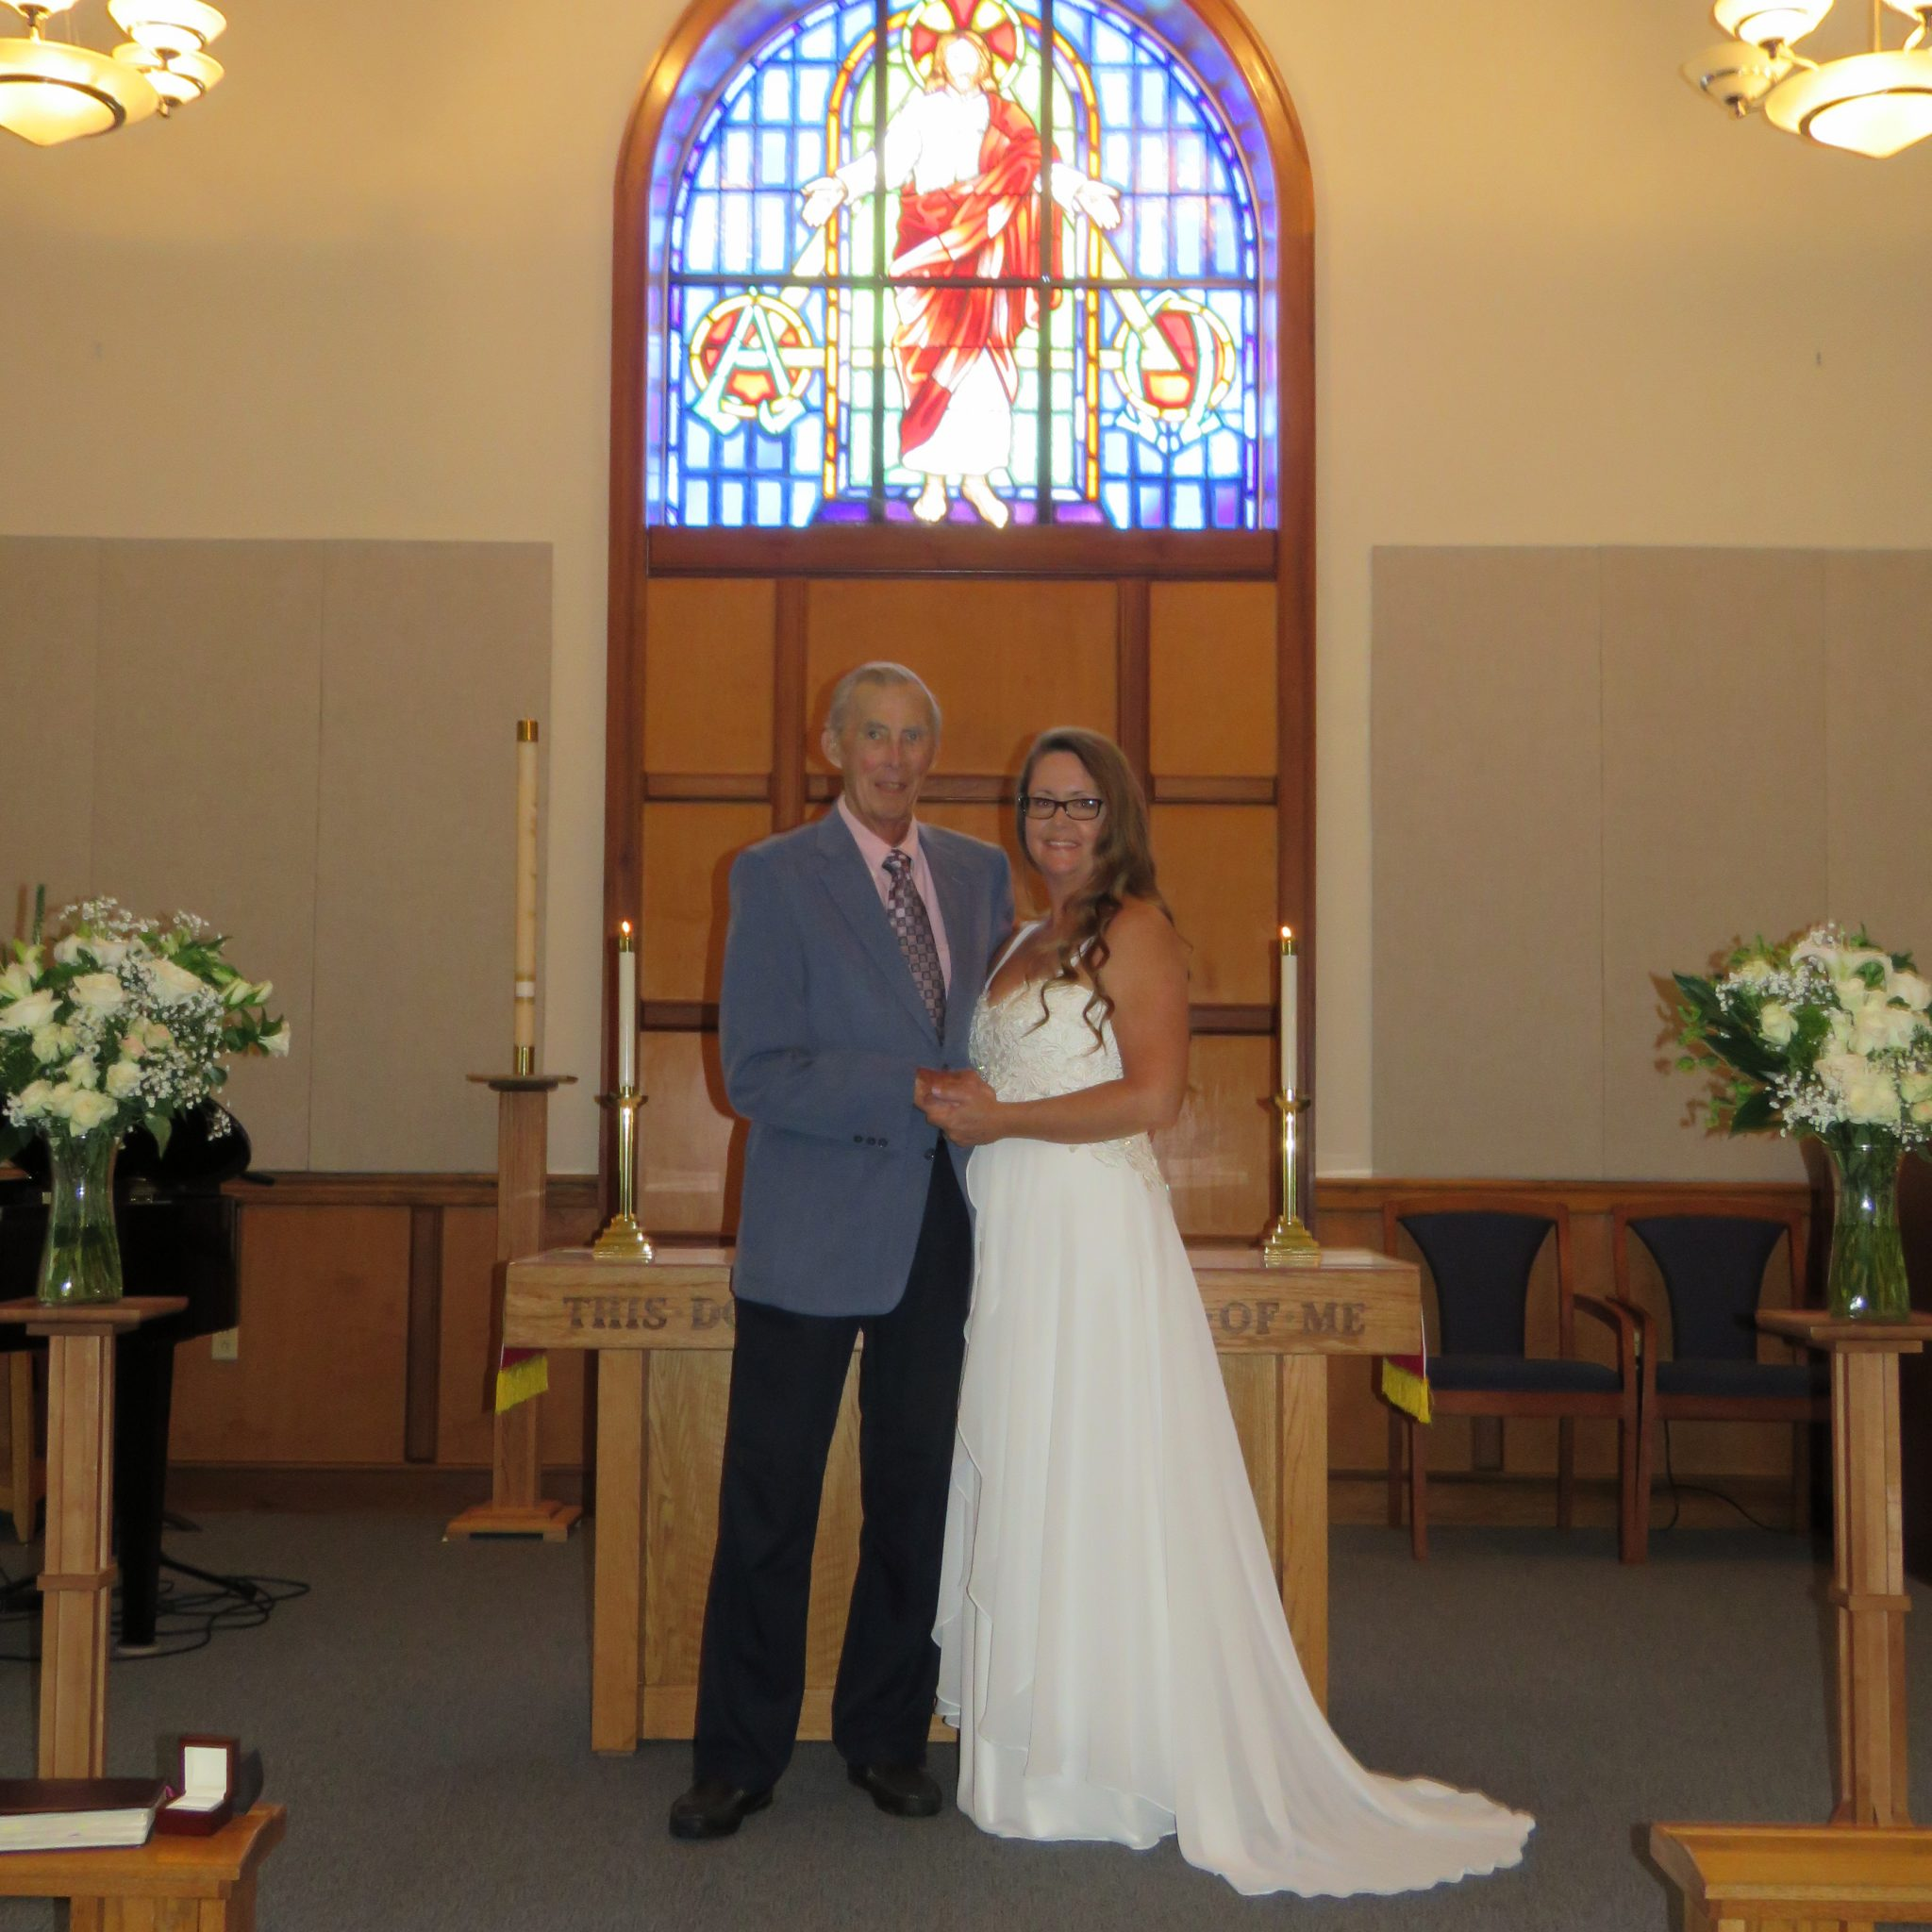 My dad and I on my wedding day! Love you dad!